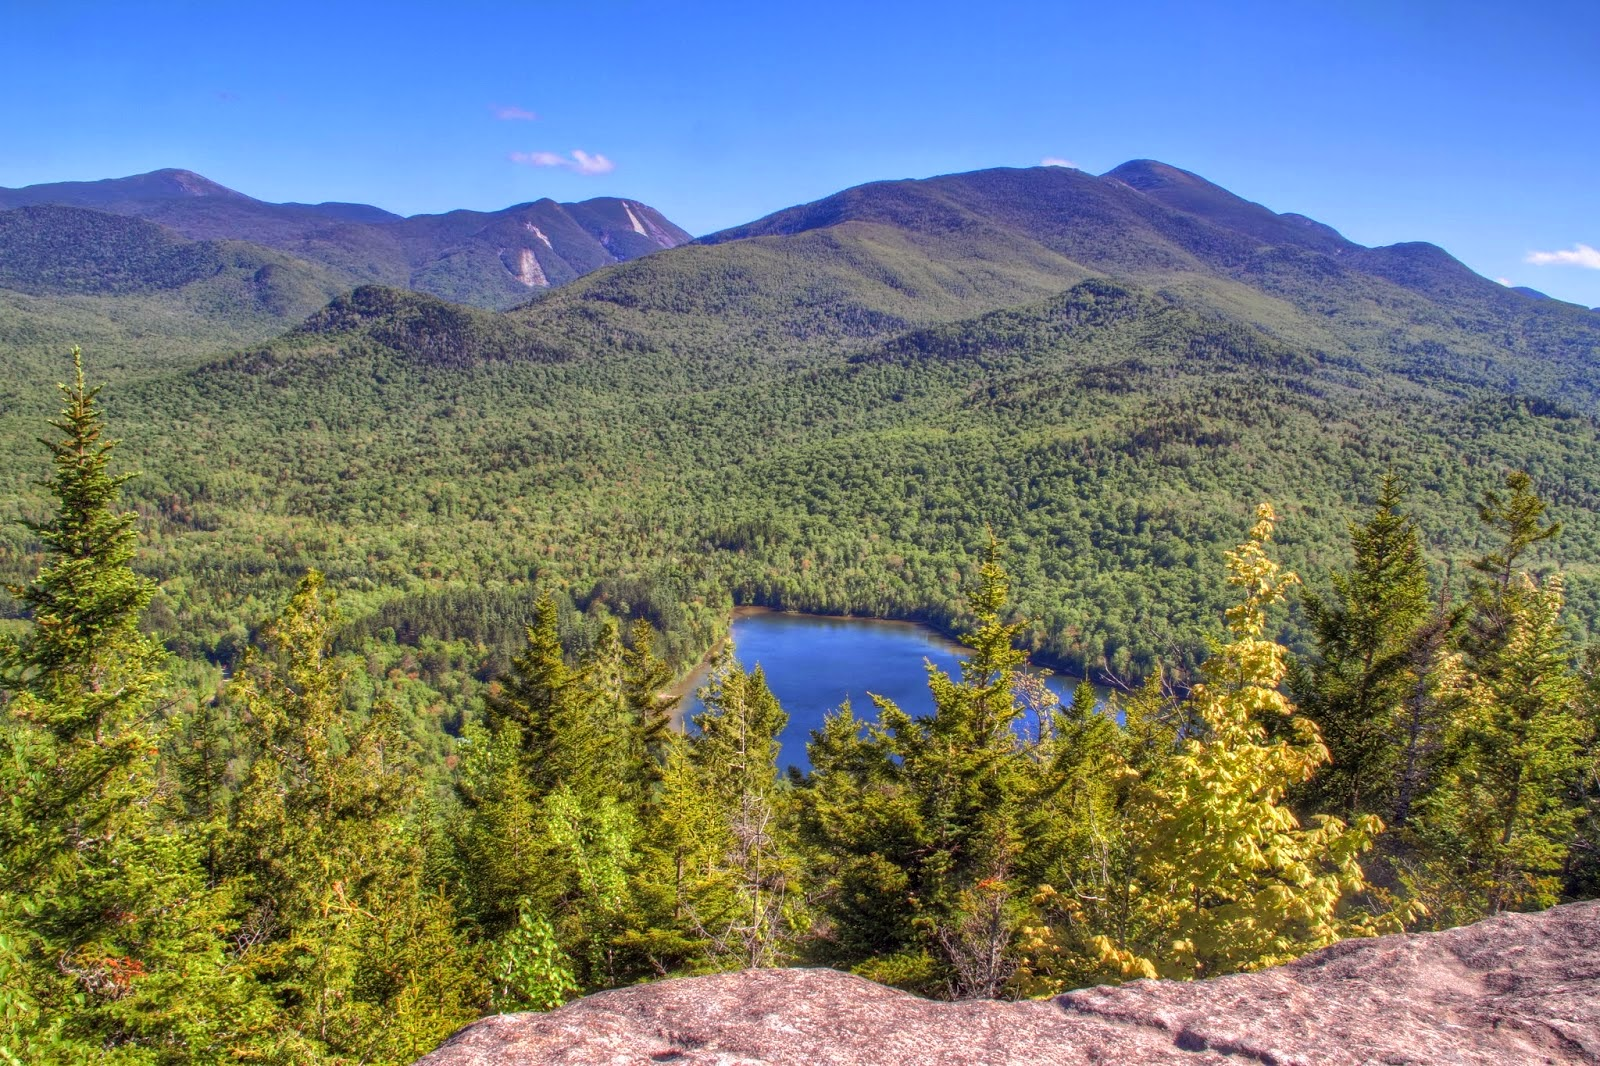 http://www.smithsonianchannel.com/sc/web/series/701/aerial-america/videos/title/14378/new-yorks-adirondack-park